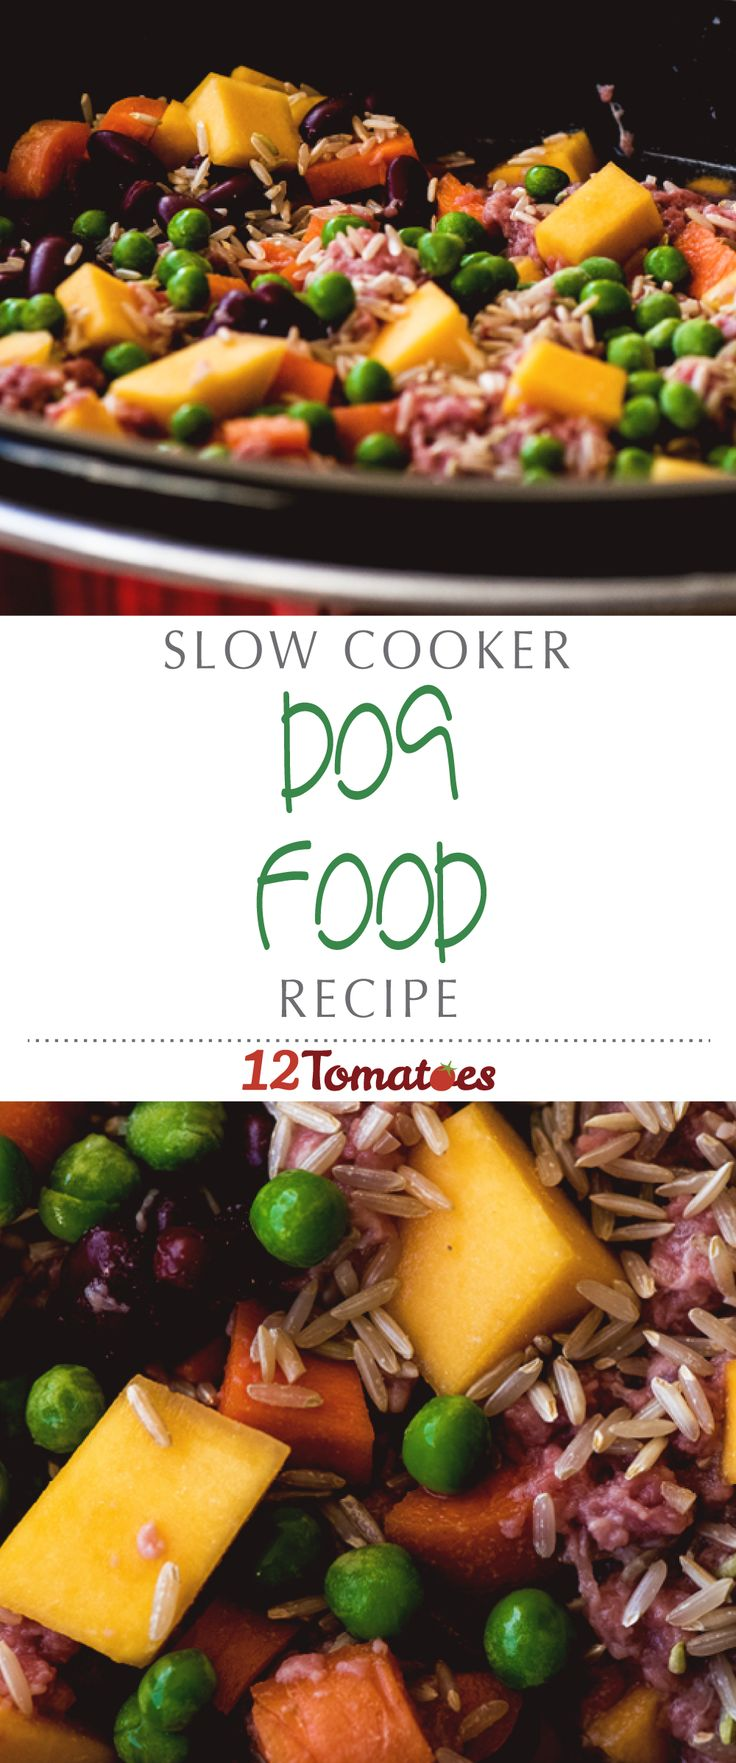 Easy Slow Cooker Dog Food | We've found the balance of ingredients that works well for our fur babies, and with a little tweaking, you'll strike the perfect balance too!